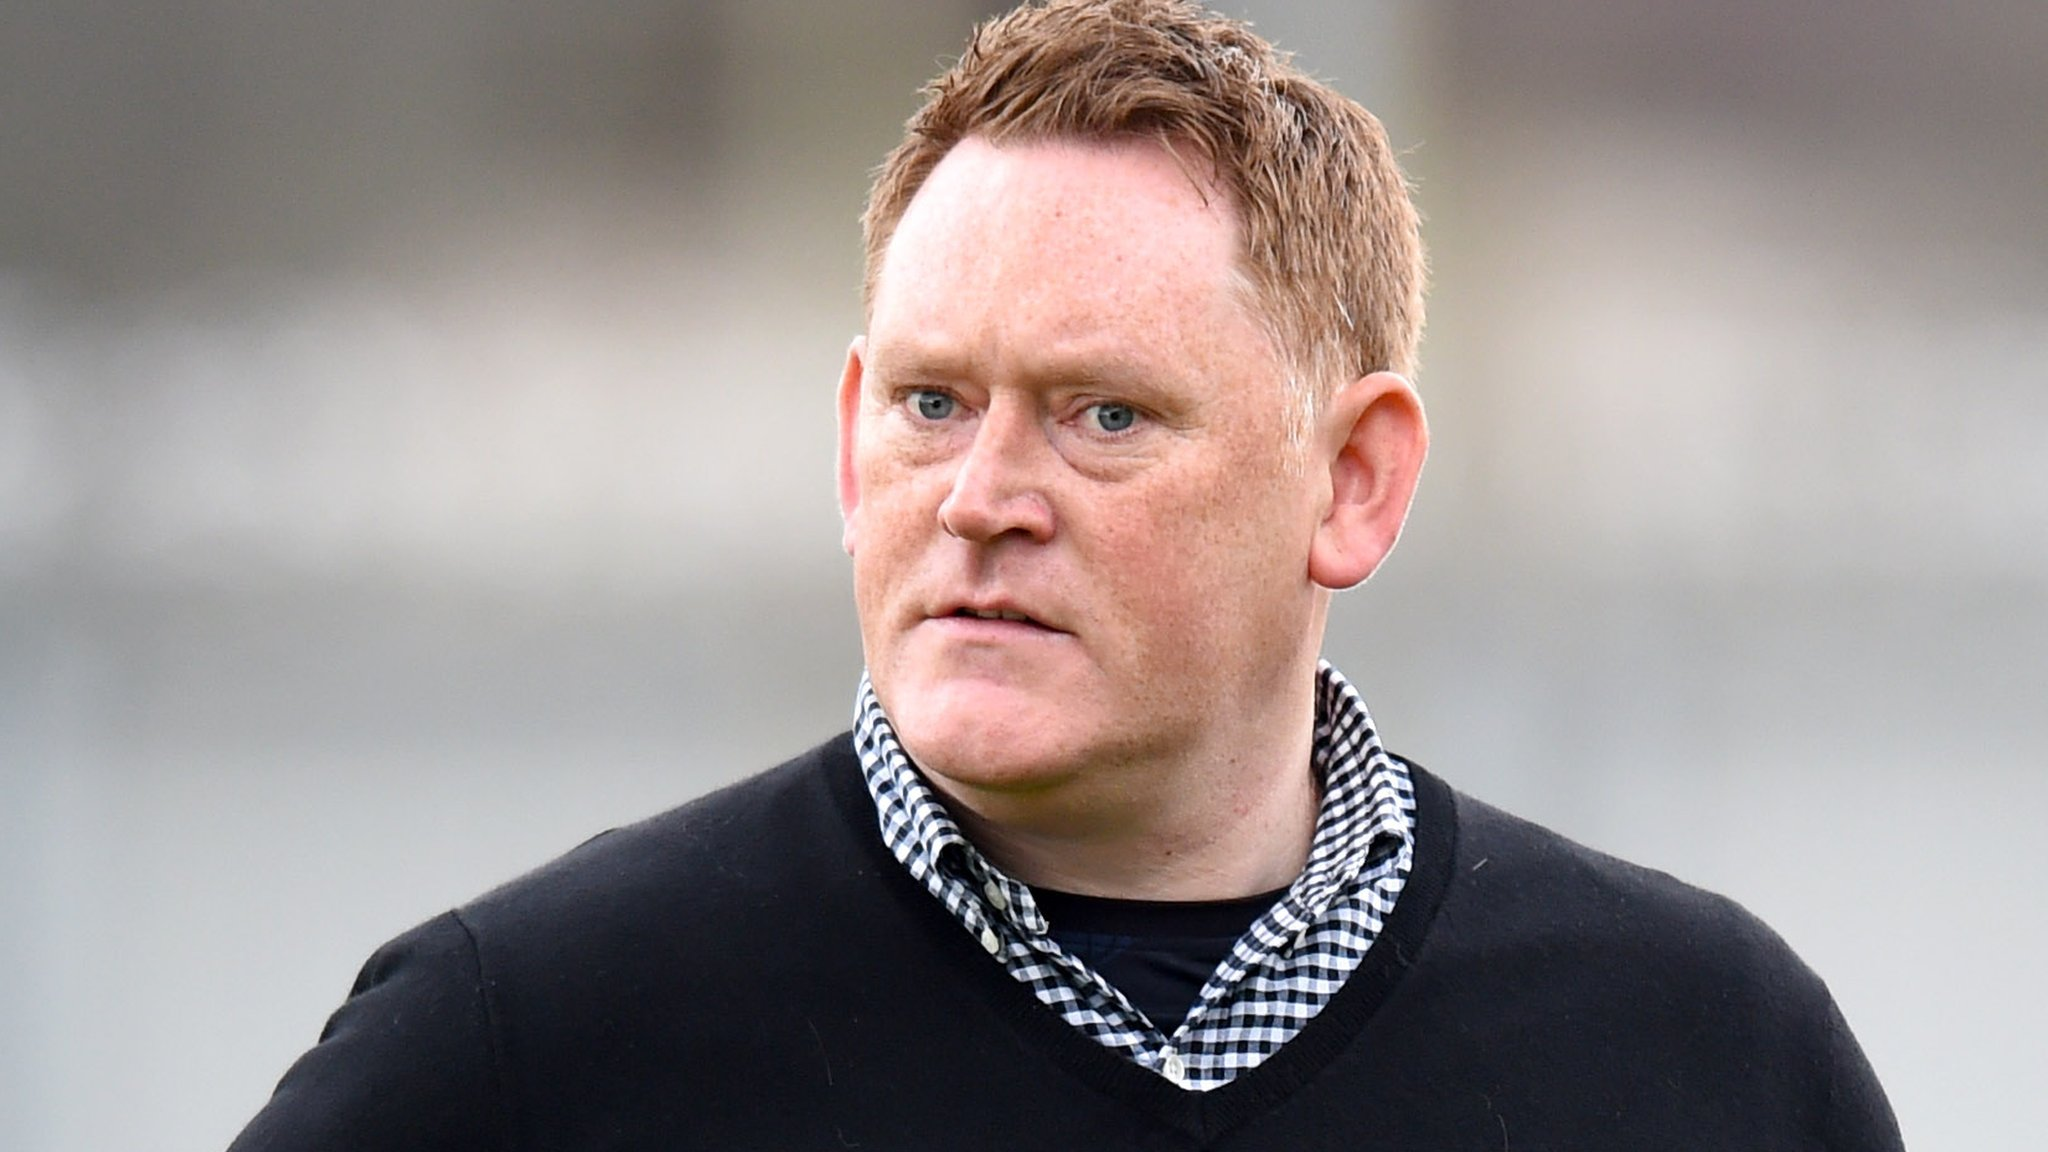 'Can we beat Thistle? Why not?' - Livingston boss David Hopkin